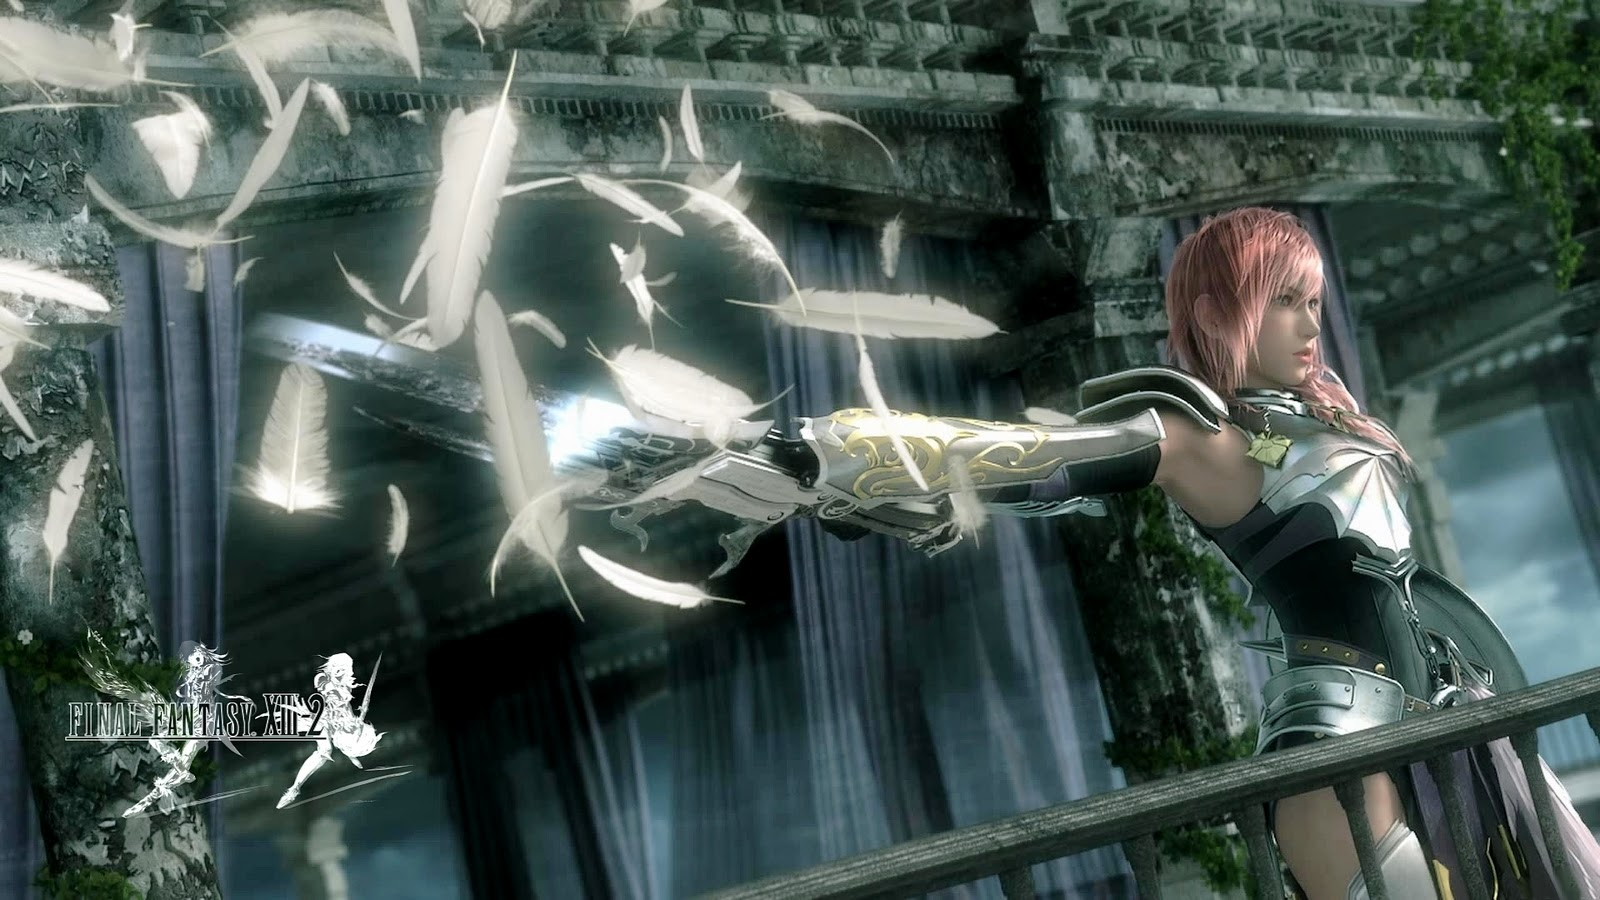 the bing final fantasy xiii 2 game wallpaper